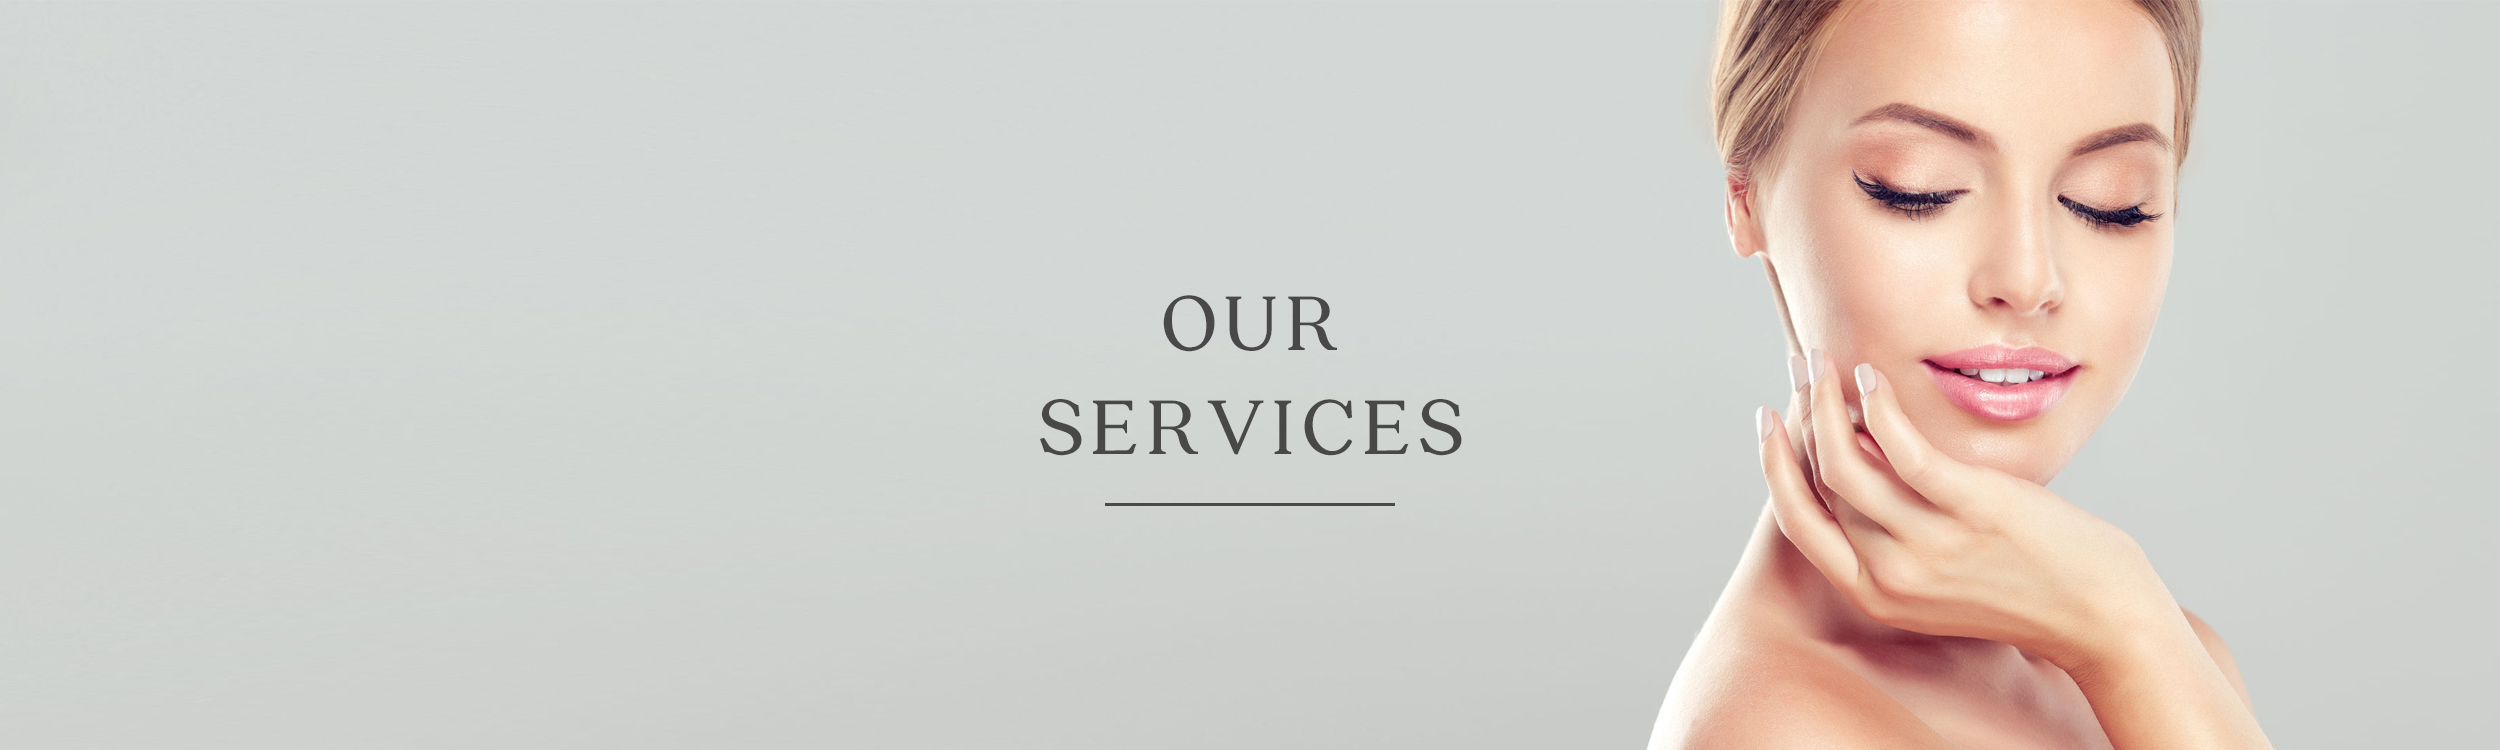 The Clinic for Medical Aesthetics - Our Services Banner.jpg